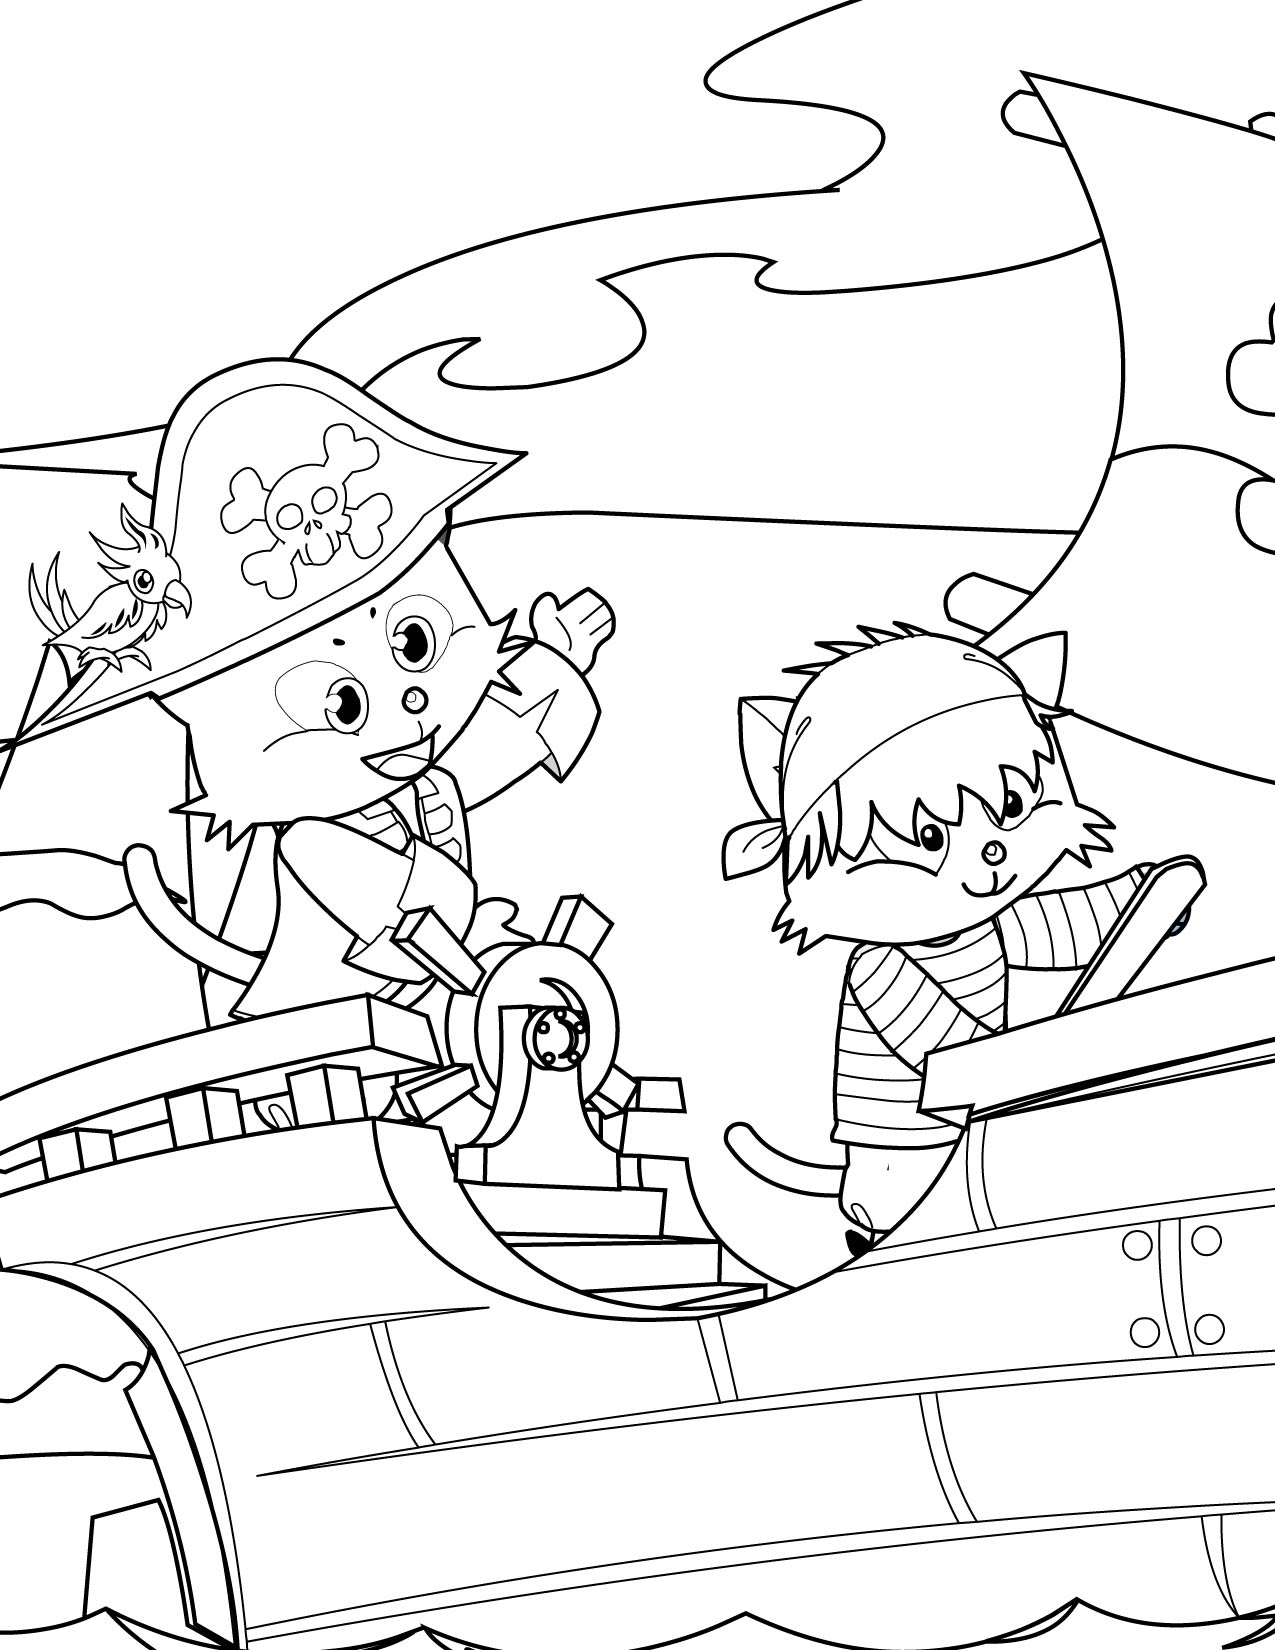 Free coloring pages pirates - Pirate Coloring Page Handipoints